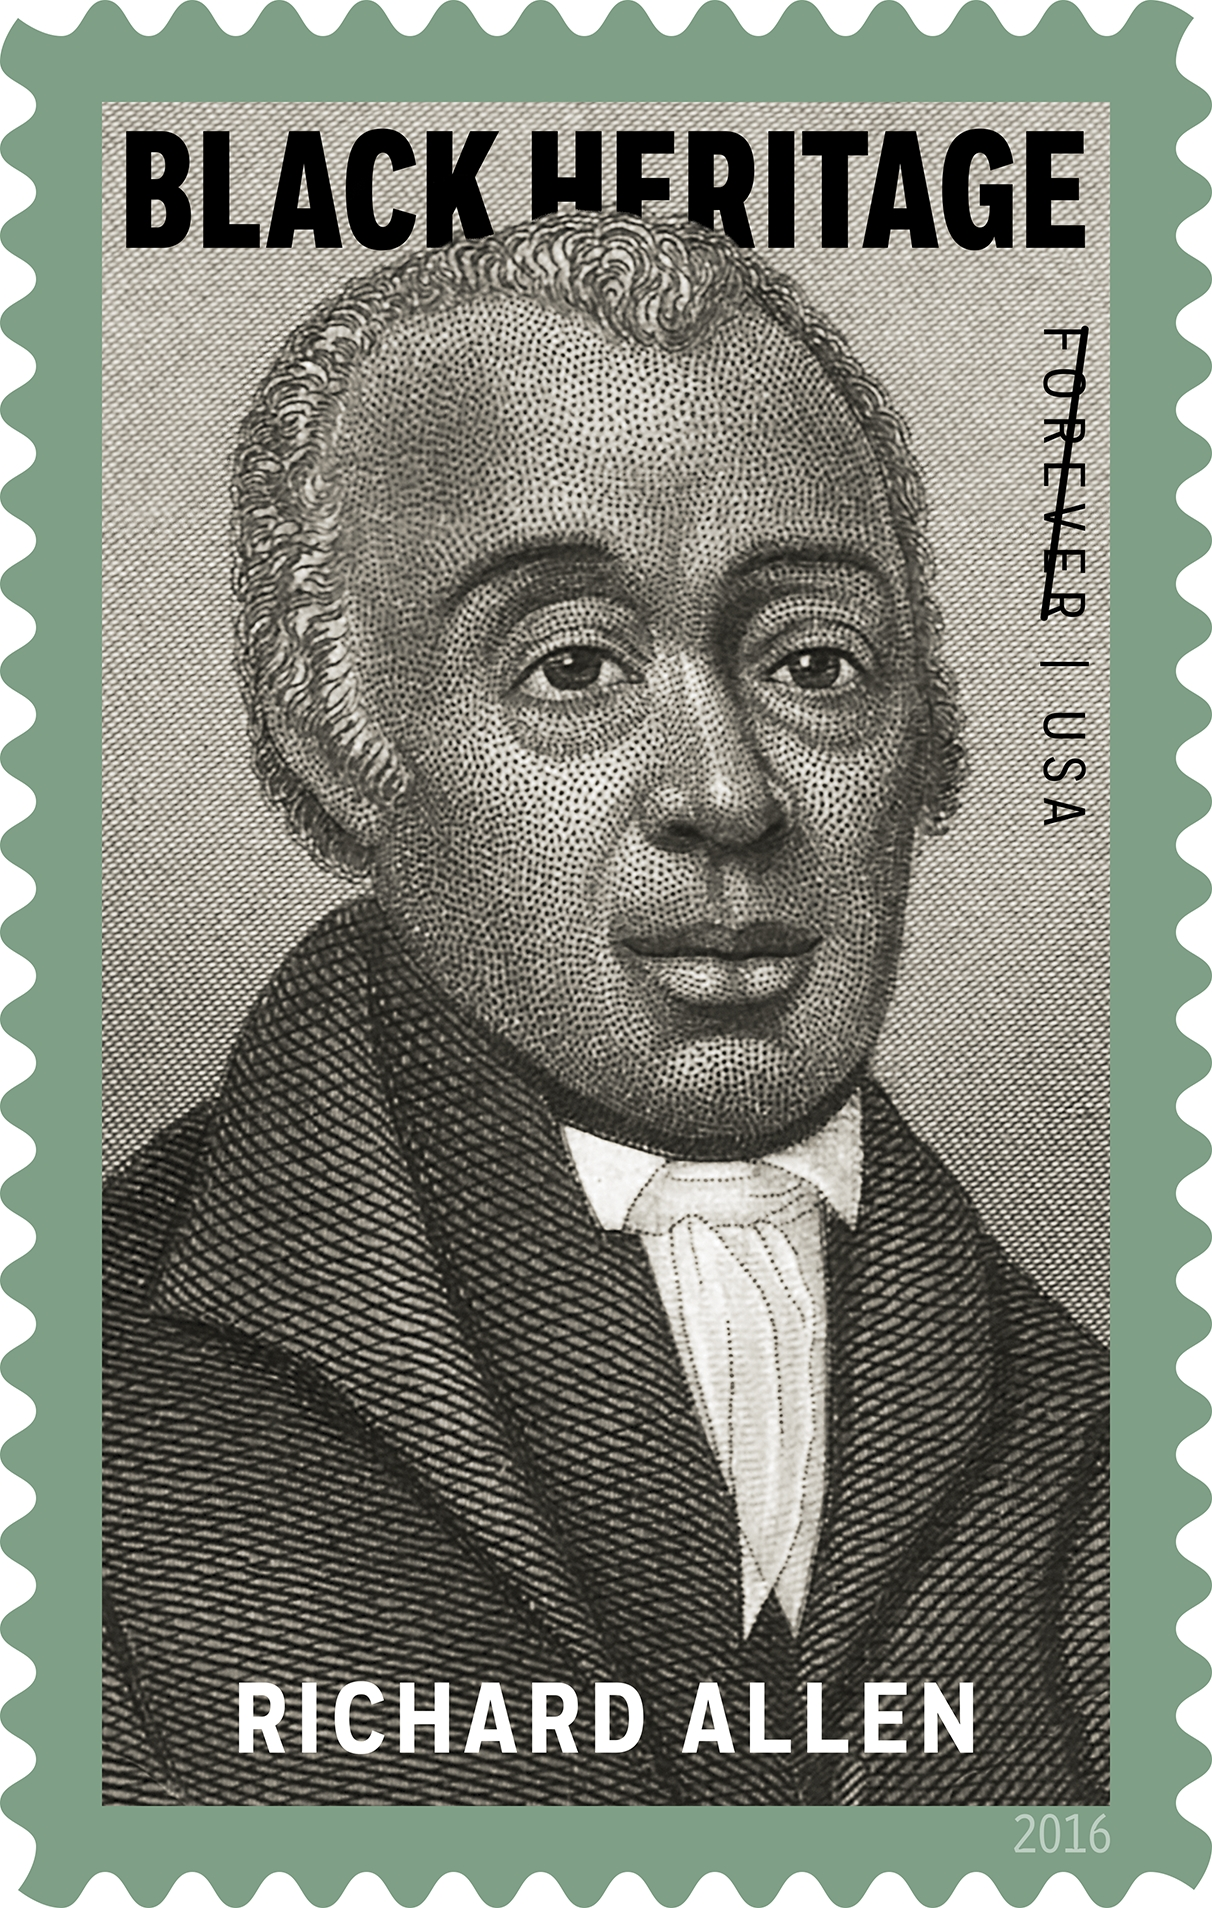 African American Stamp Facts People The Birmingham Times